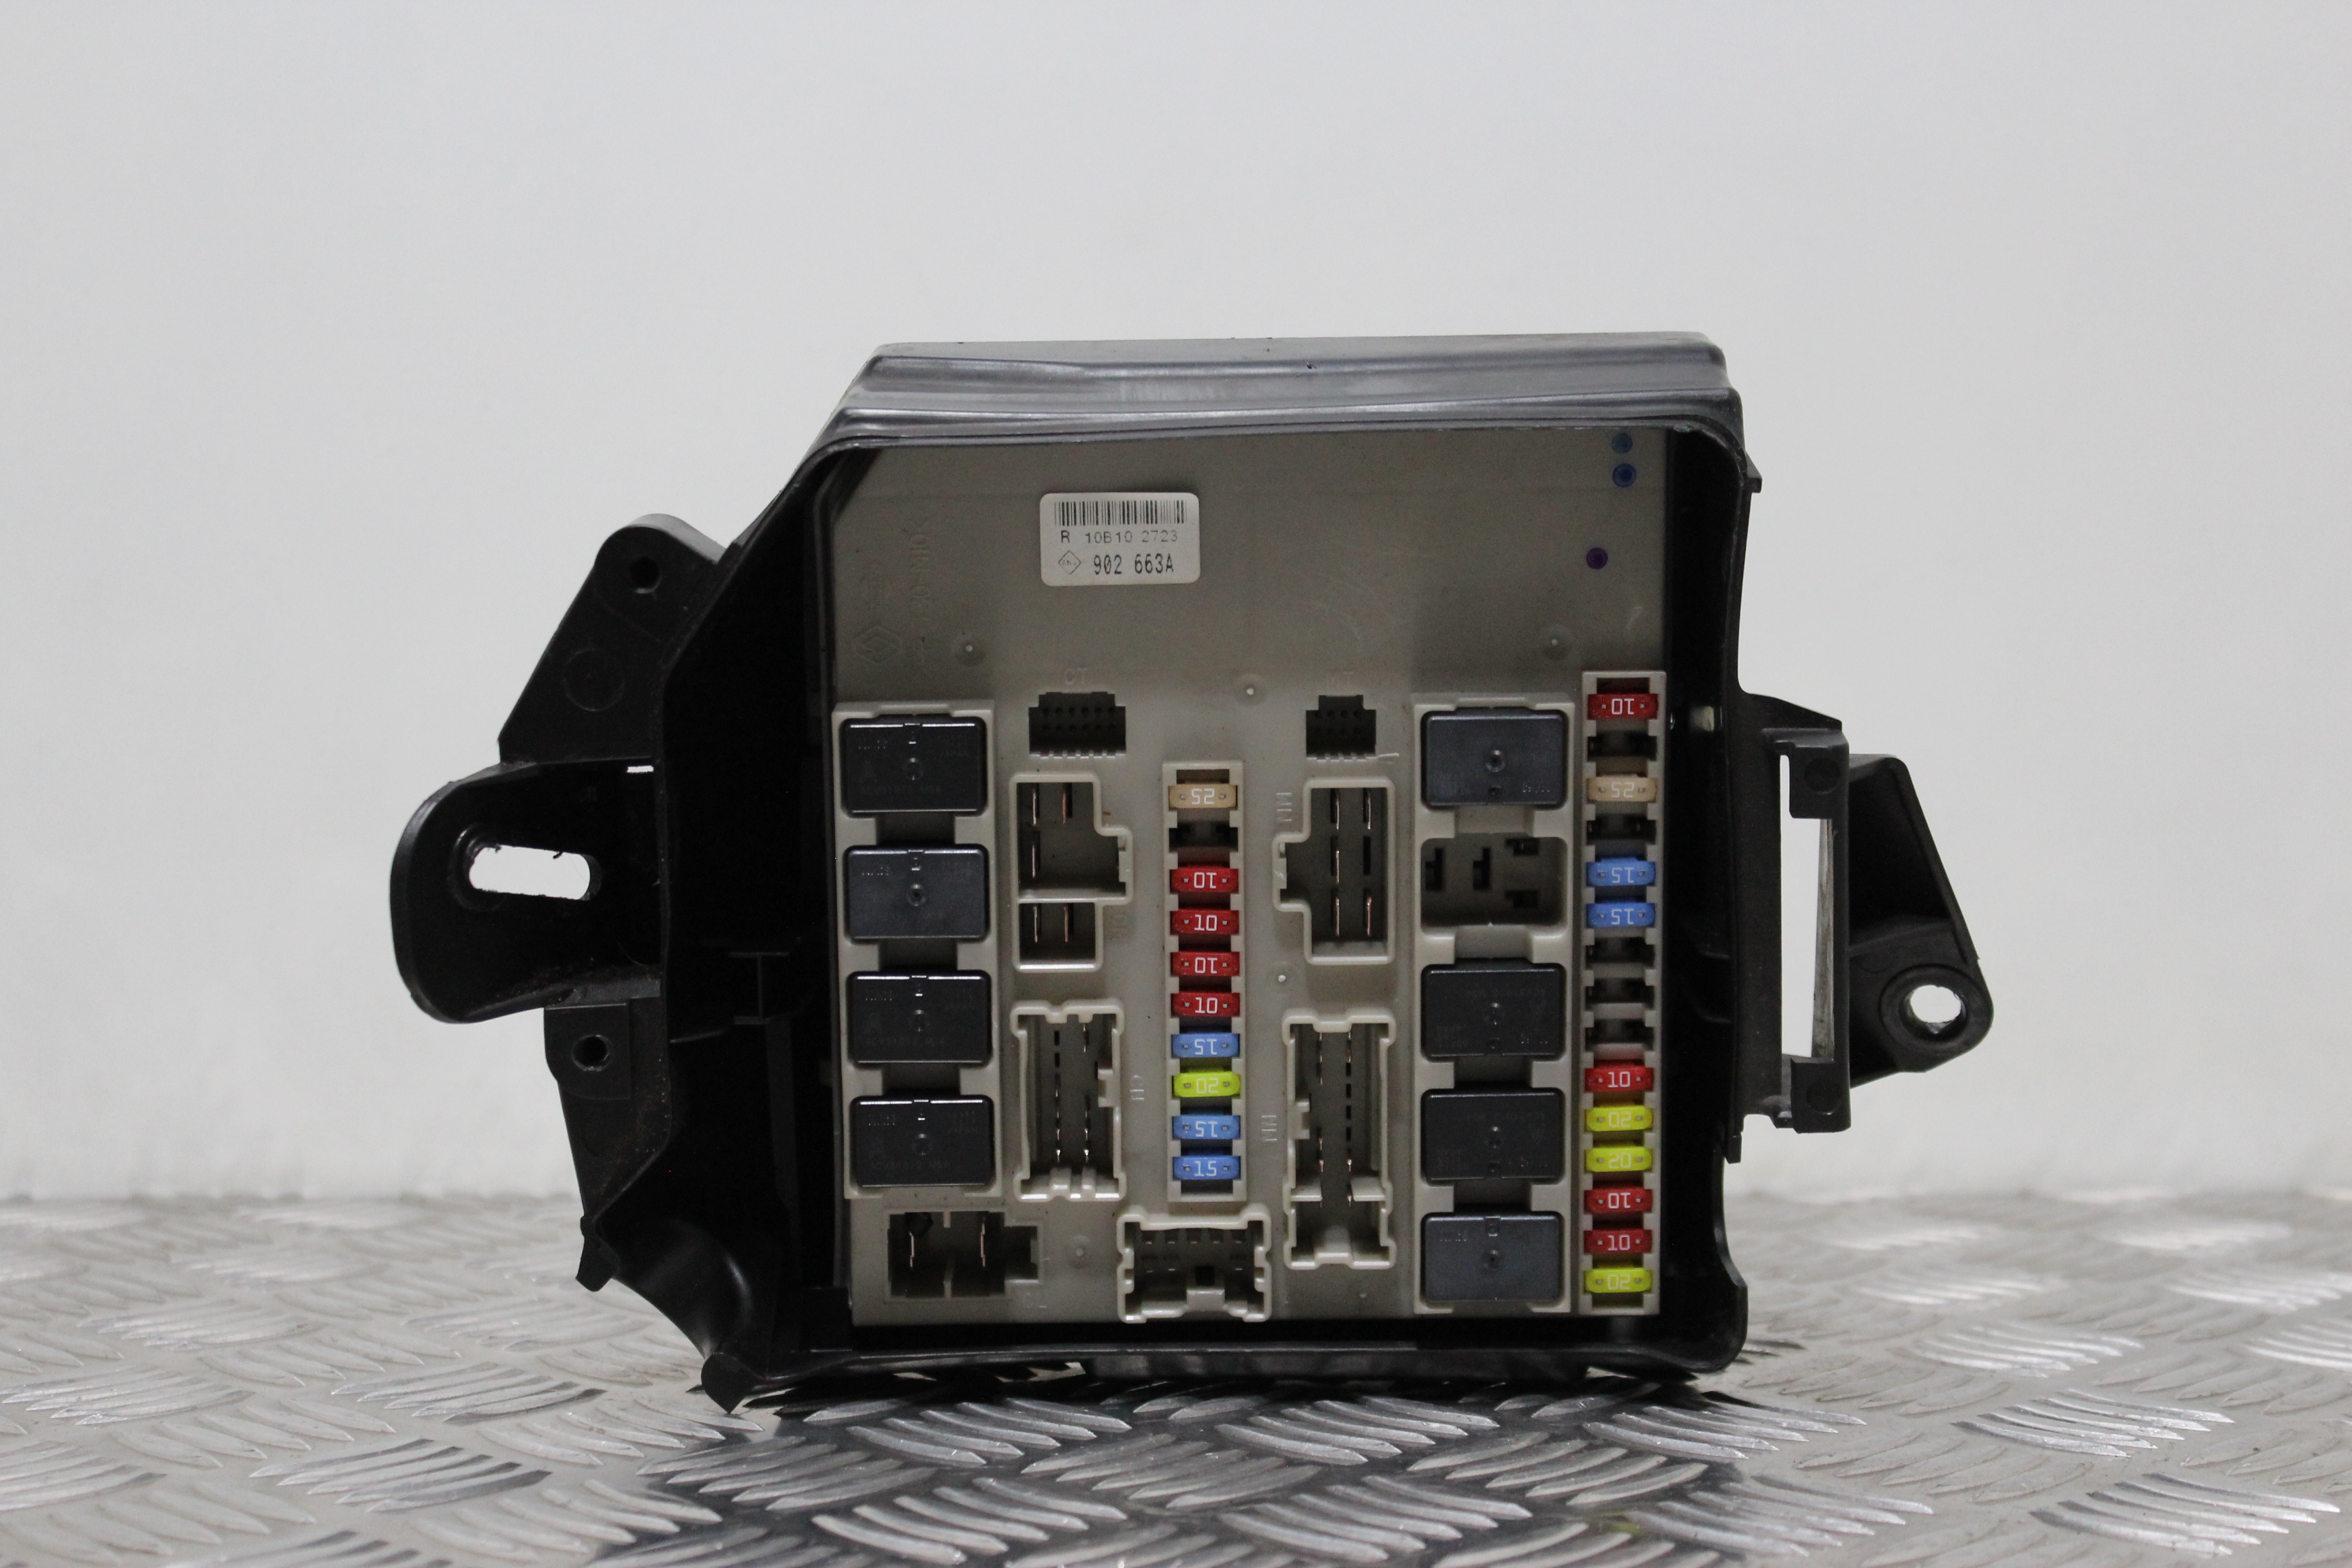 fuse box removed from similar vehicle